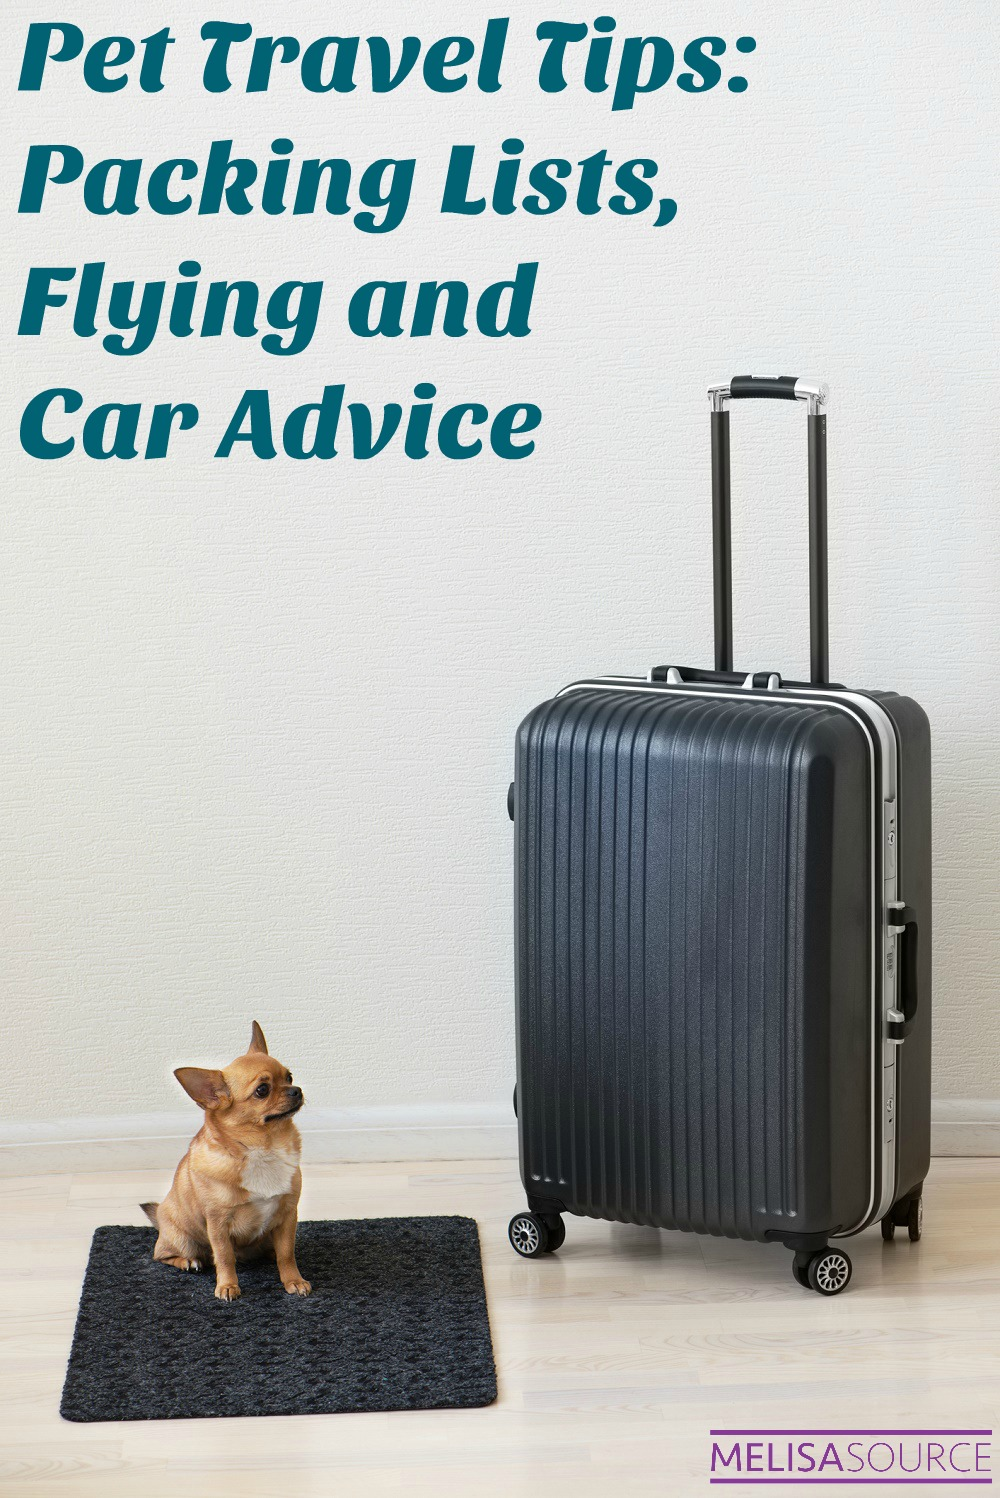 Pet Travel Tips: Packing Lists, Flying and Car Advice